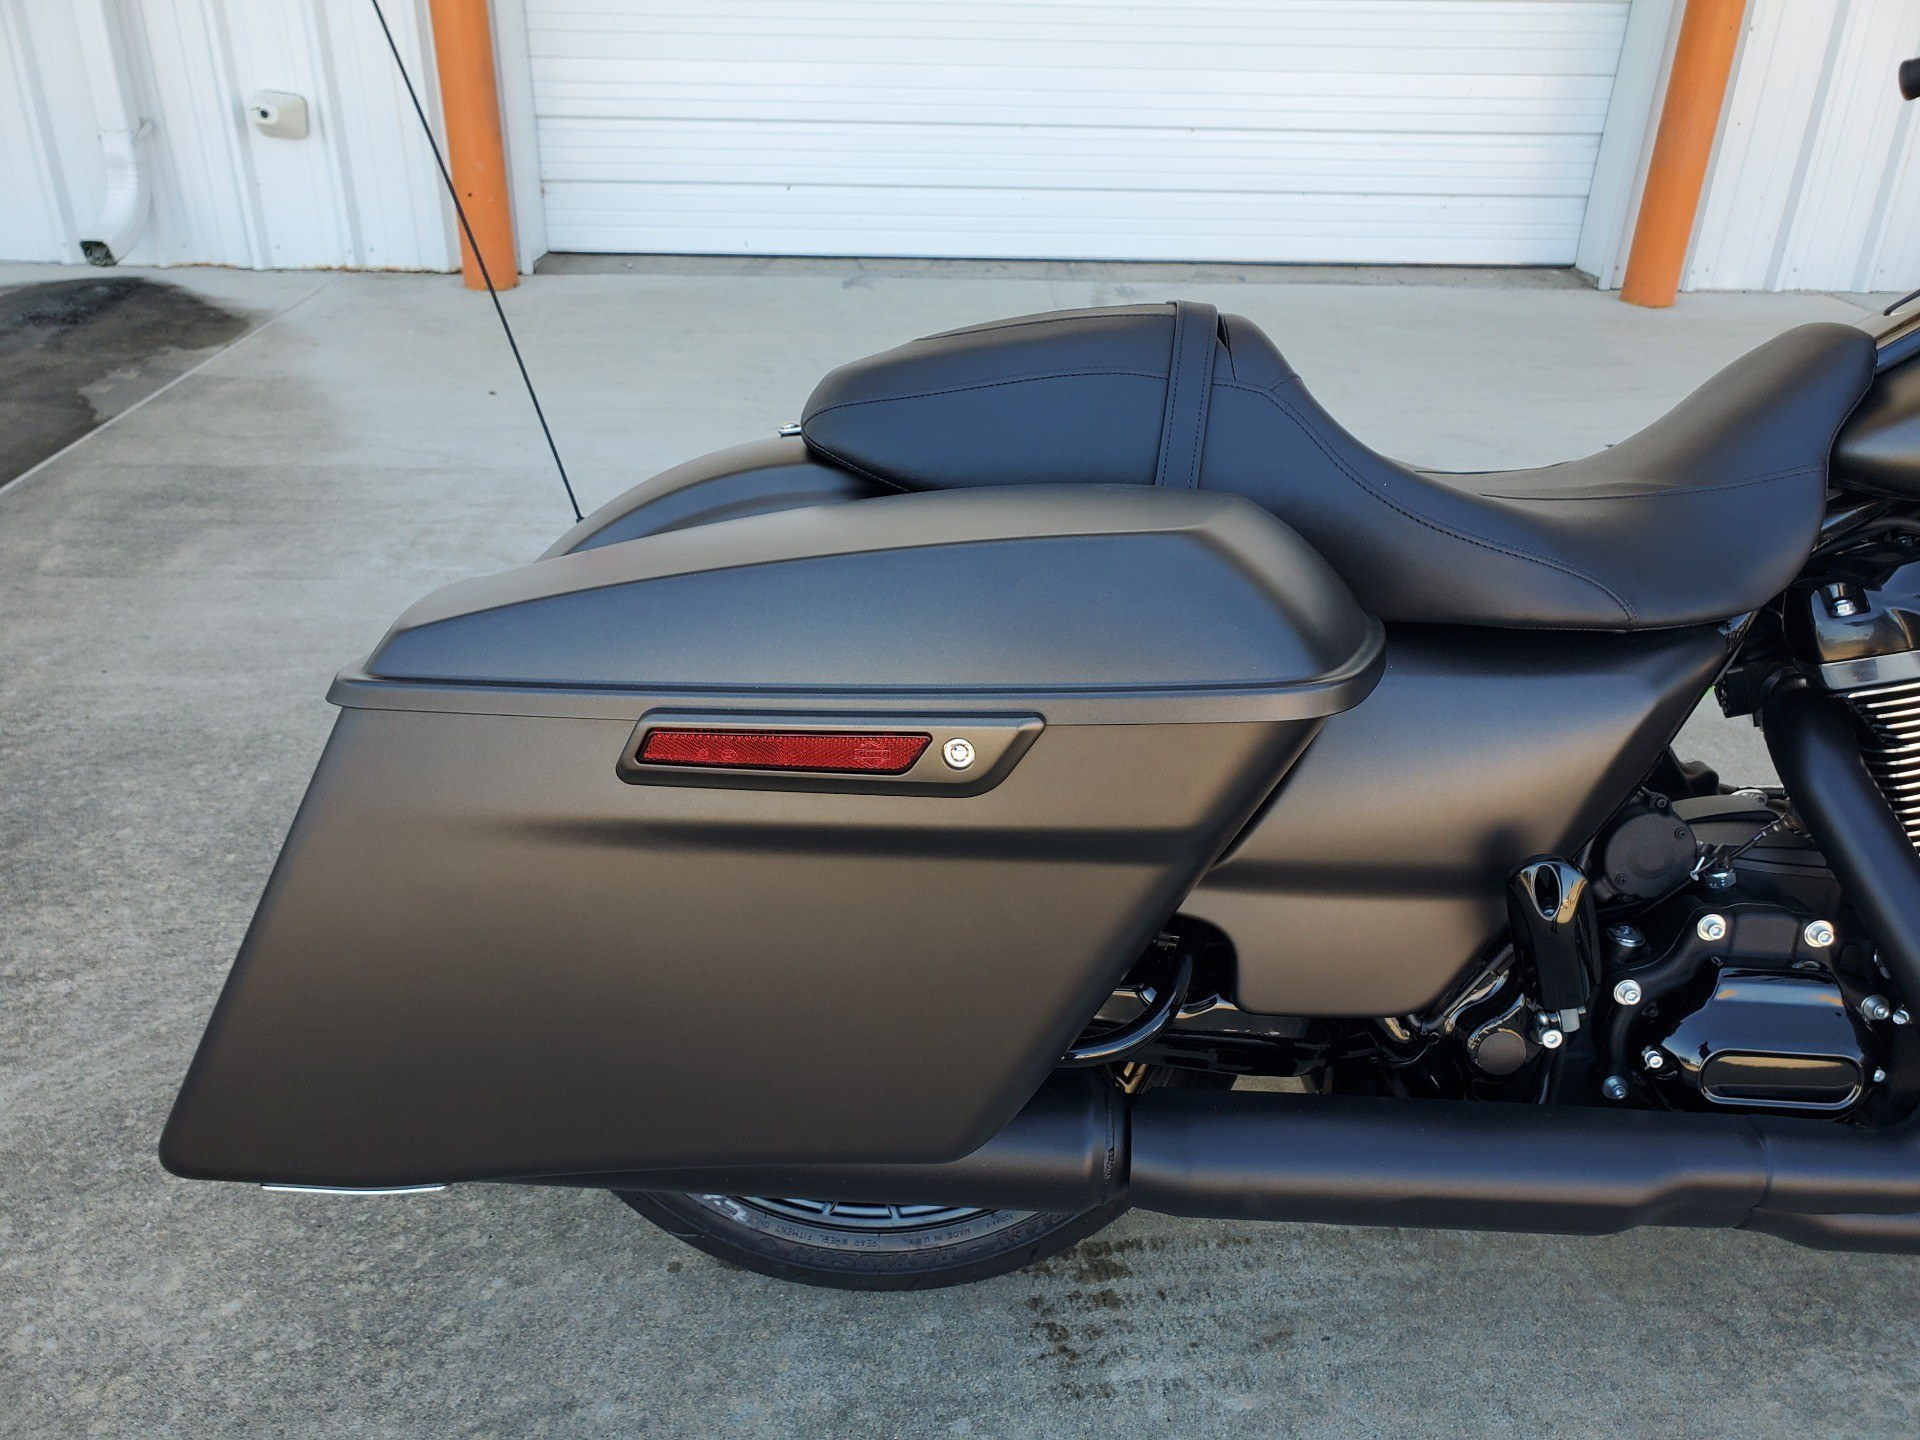 2020 Street Glide Special River Rock Denim for sale - Photo 5